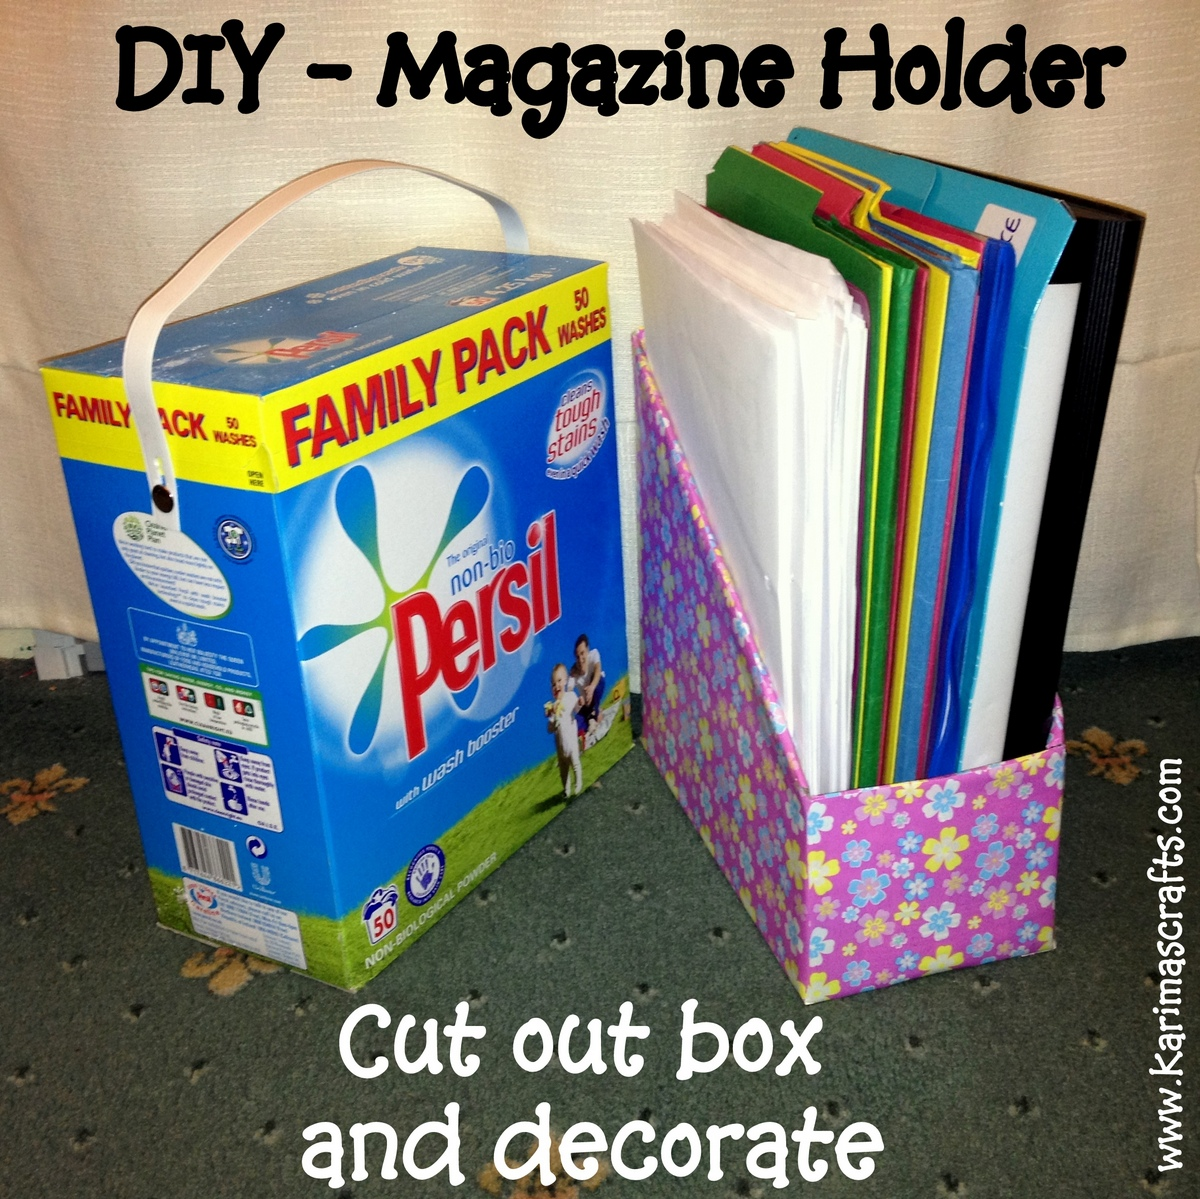 Magazine Holders are so easy to make with cardboard boxes from either detergent boxes or cereal boxes. Just cut the shape you want and decorate as you wish.  sc 1 st  Karimau0027s Crafts & Karimau0027s Crafts: DIY Magazine Holder - Great Ideas Aboutintivar.Com